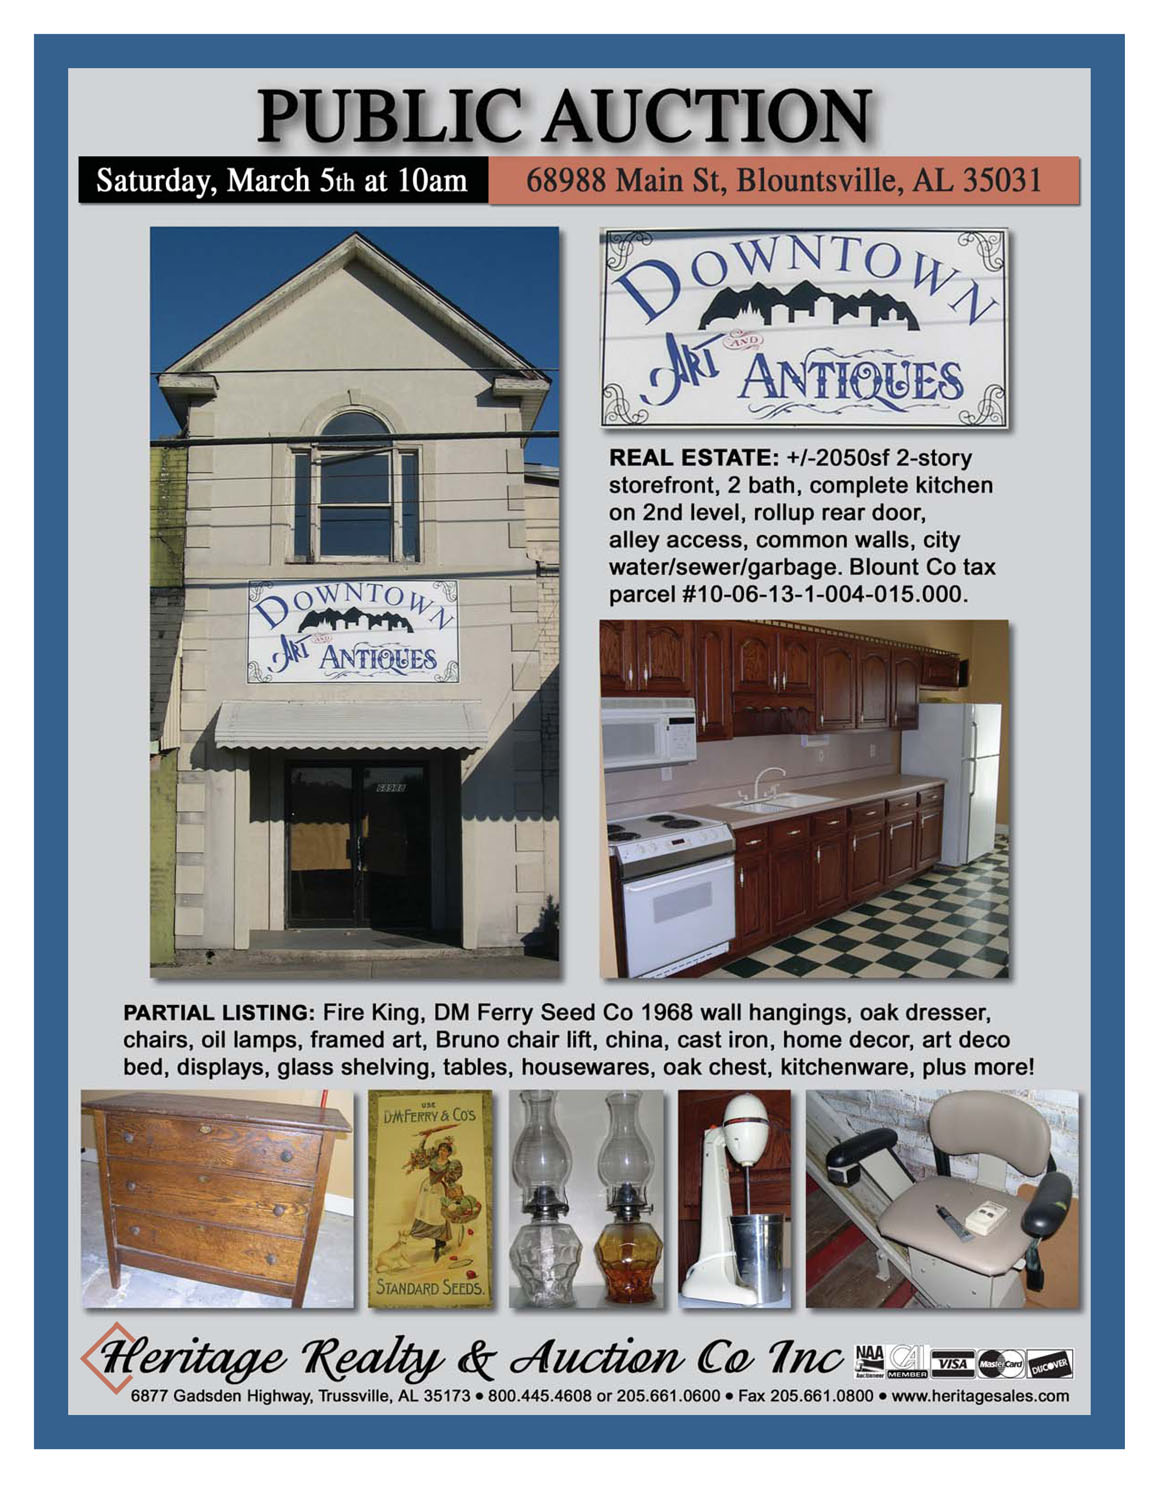 Real Estate & Antiques